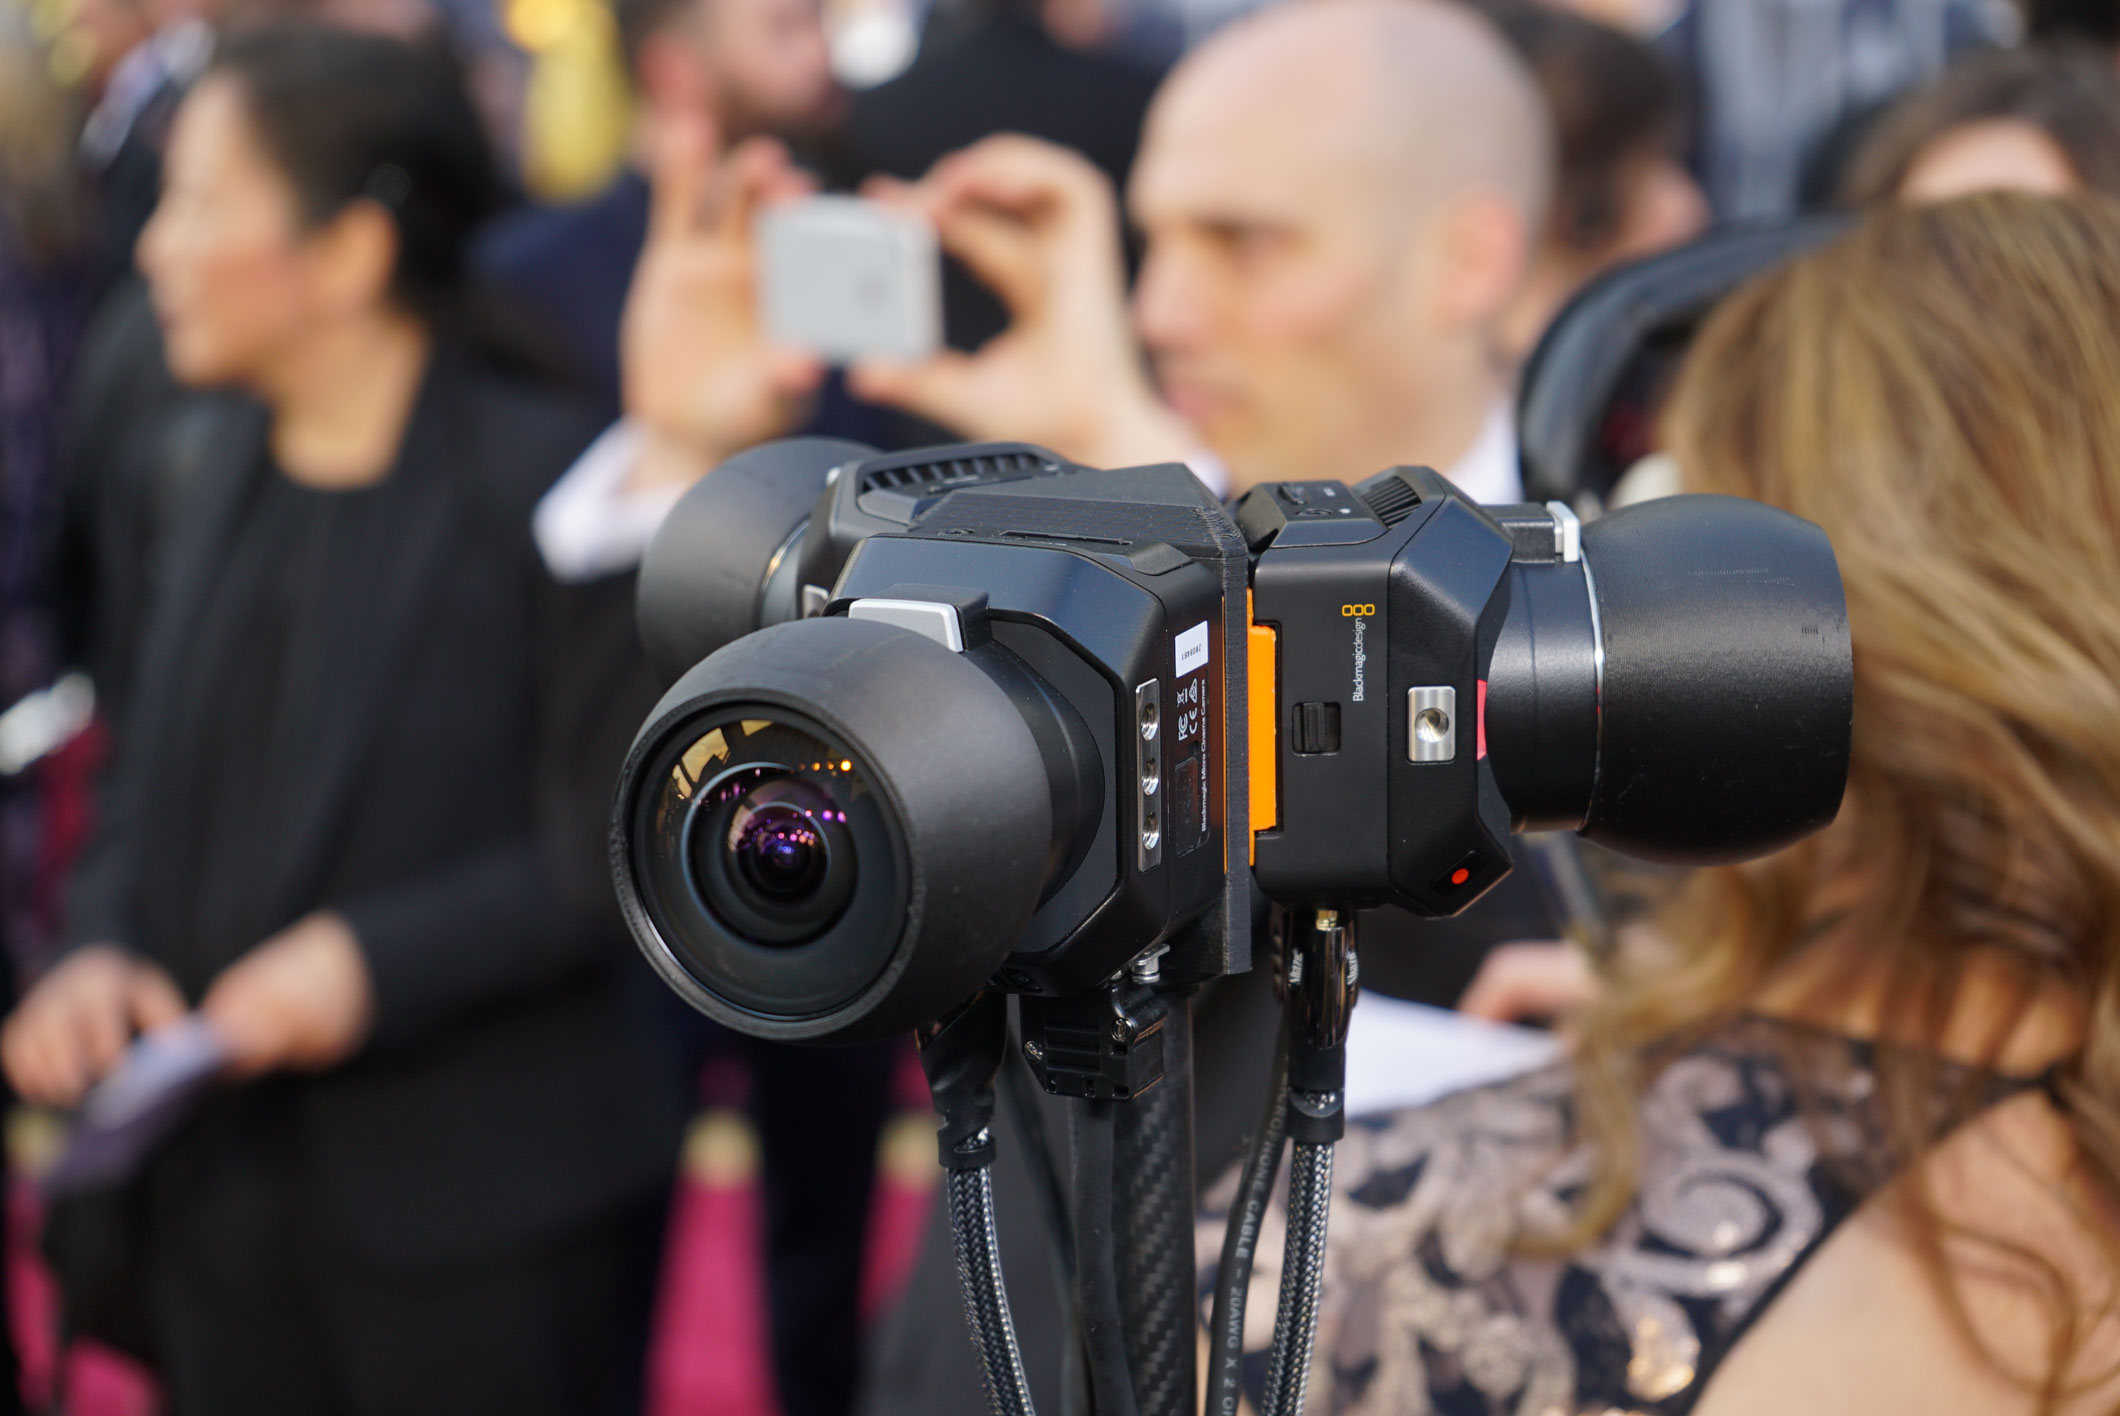 The Blackmagic Design Micro Cinema Camera in action at the 2016 Oscars red carpet.